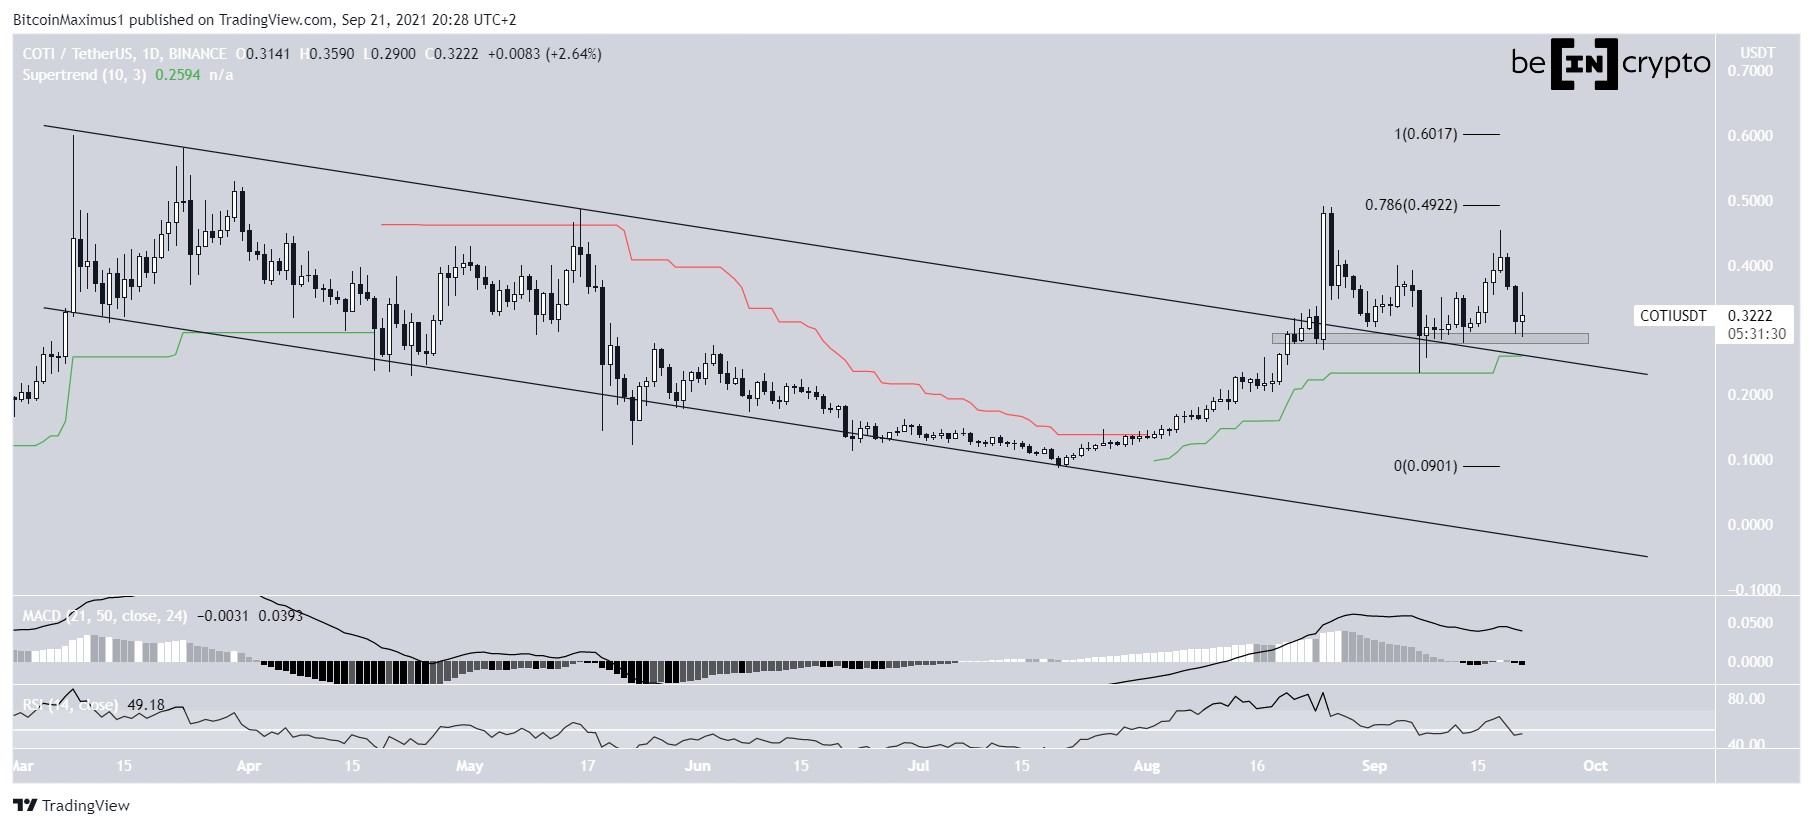 COTI breaks out